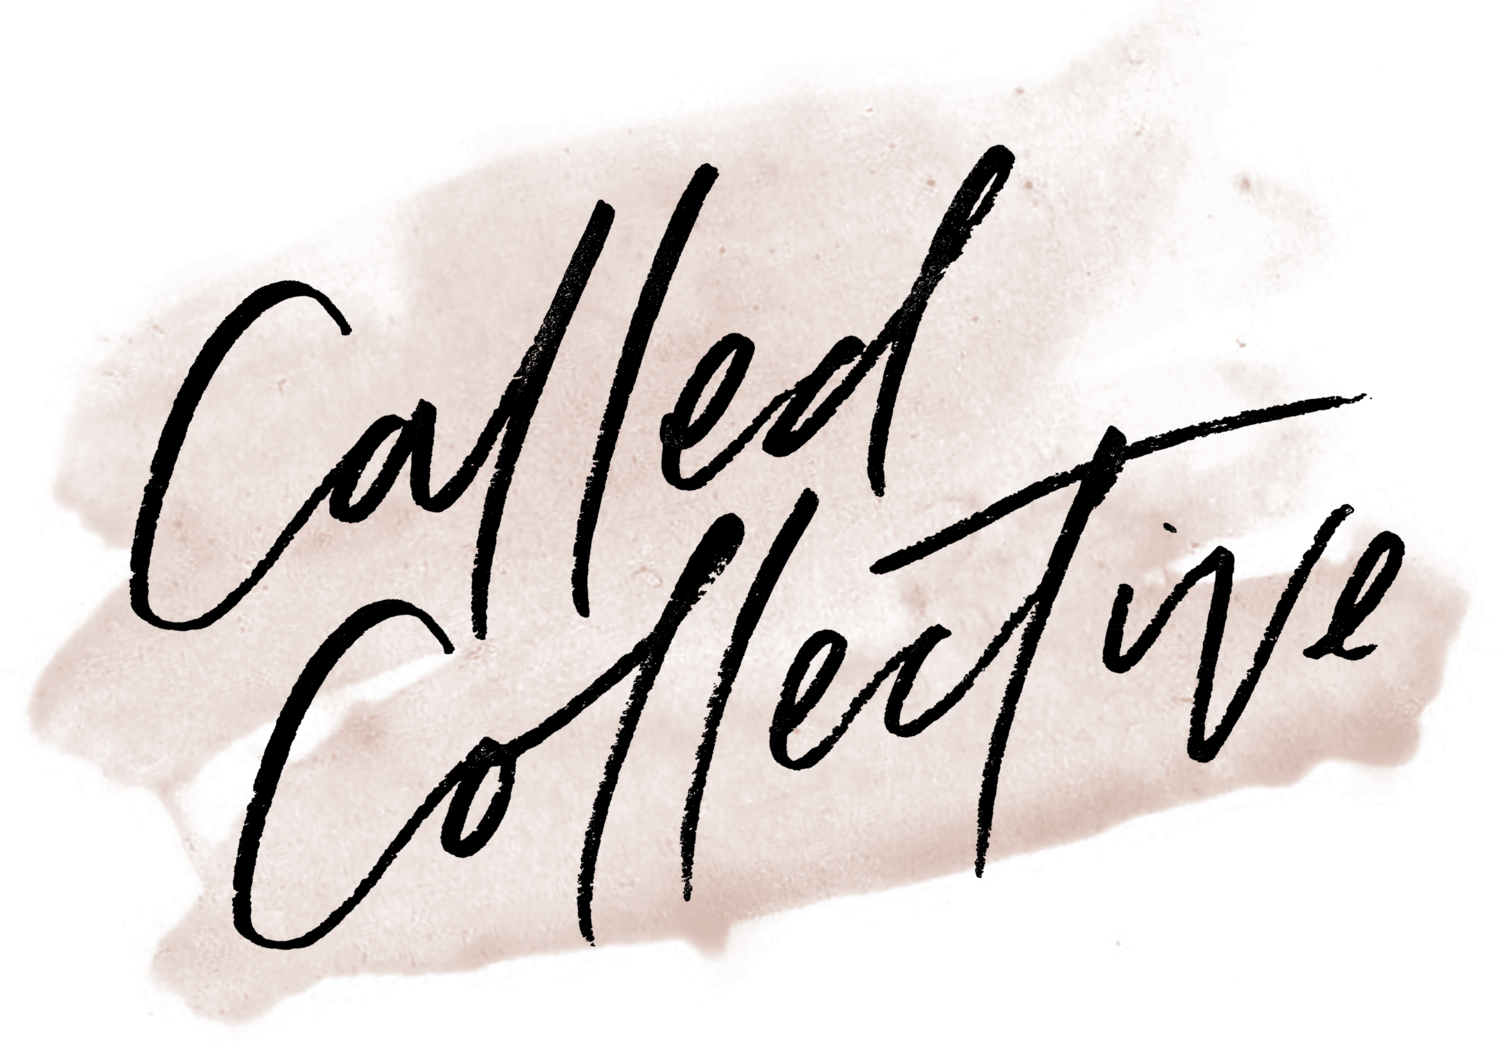 Called Collective